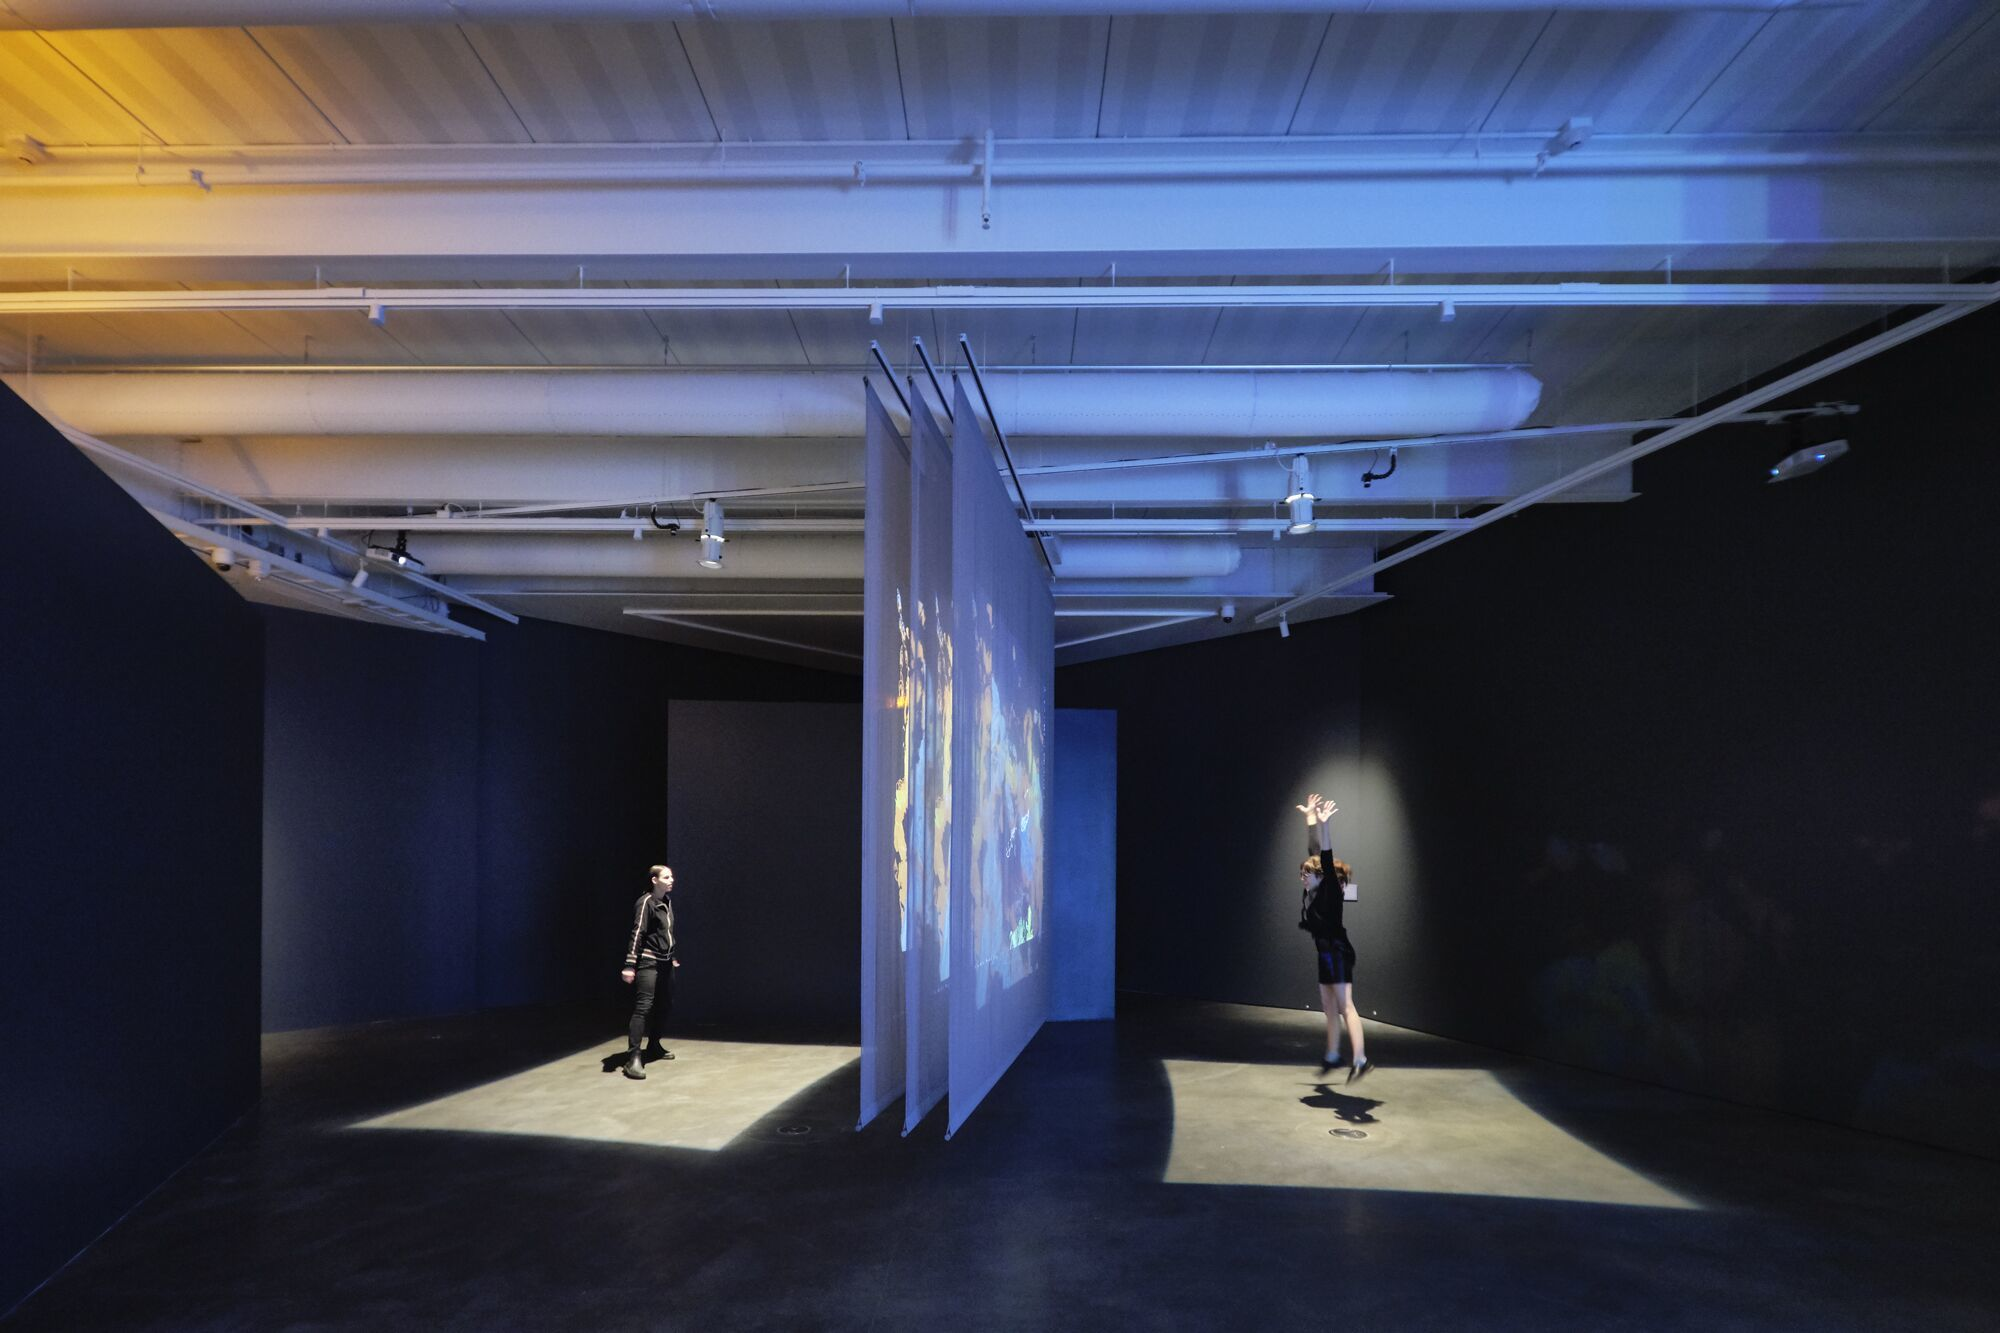 Three fabric scrims hang from a gallery ceiling, while abstract images project on them as two adults interact with the installation